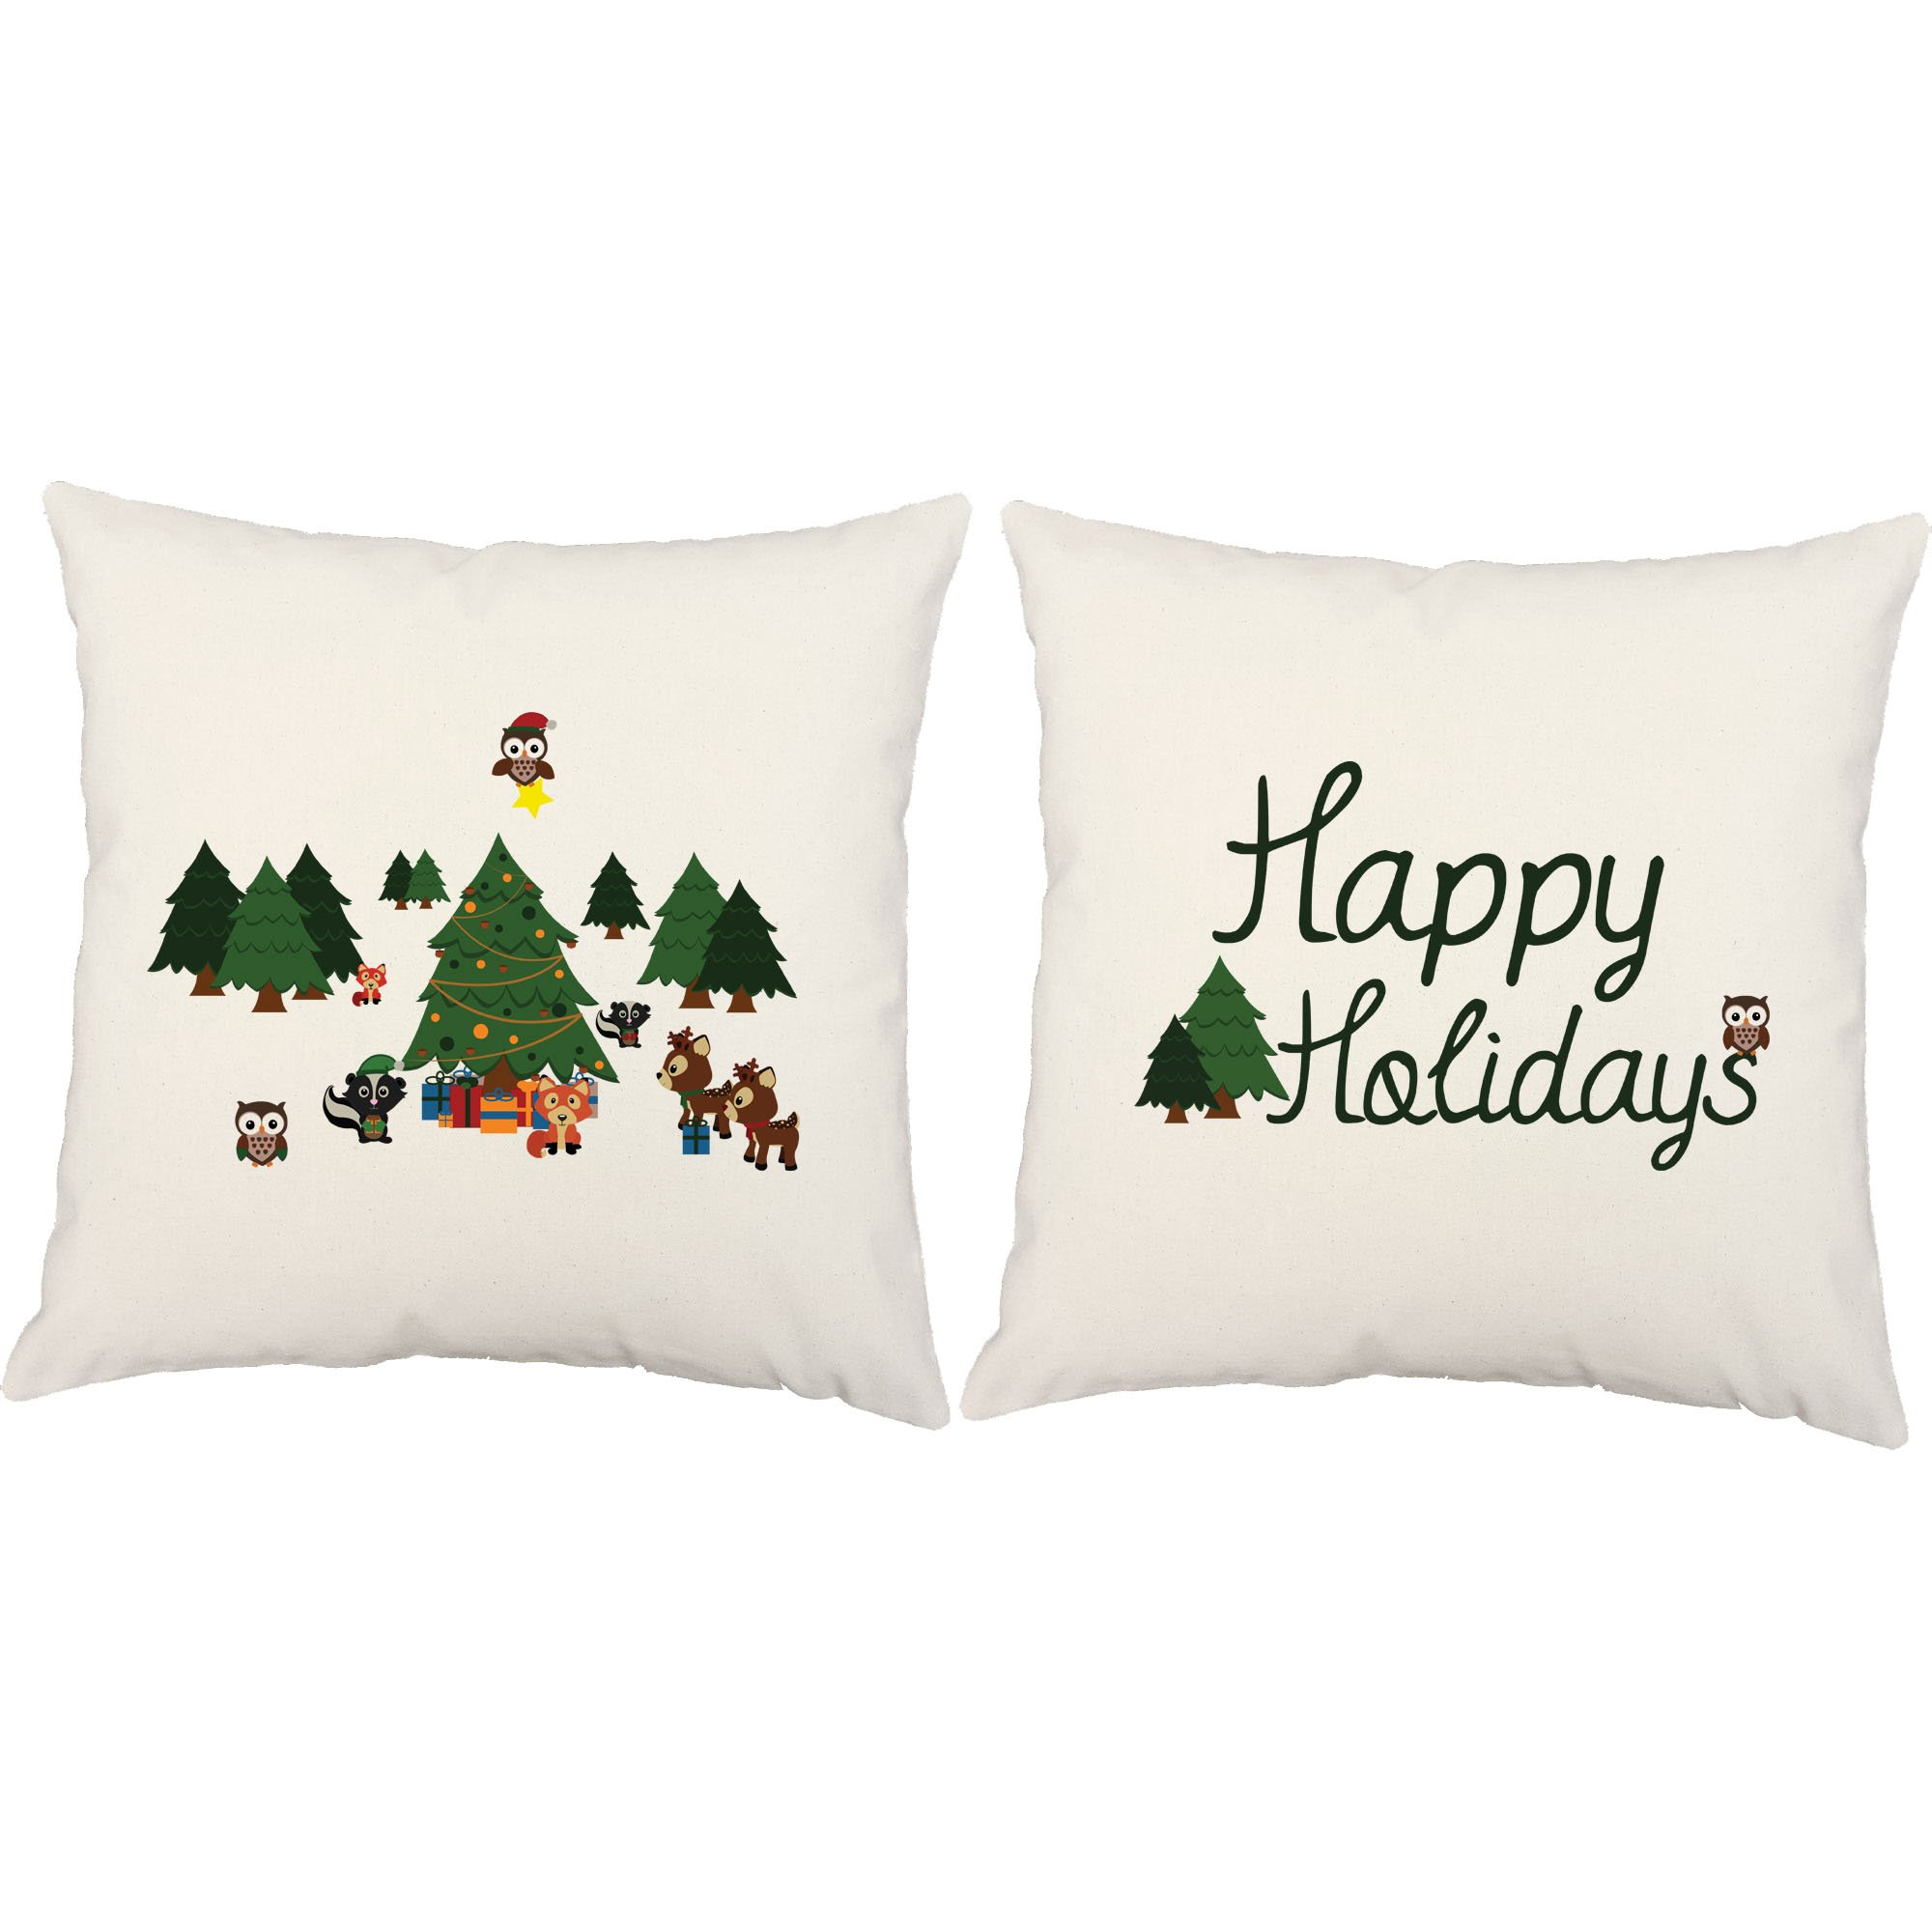 Set of 2 RoomCraft Winter Wonderland Animals Throw Pillows 20x20 Inch Square White Outdoor Holiday Cushions